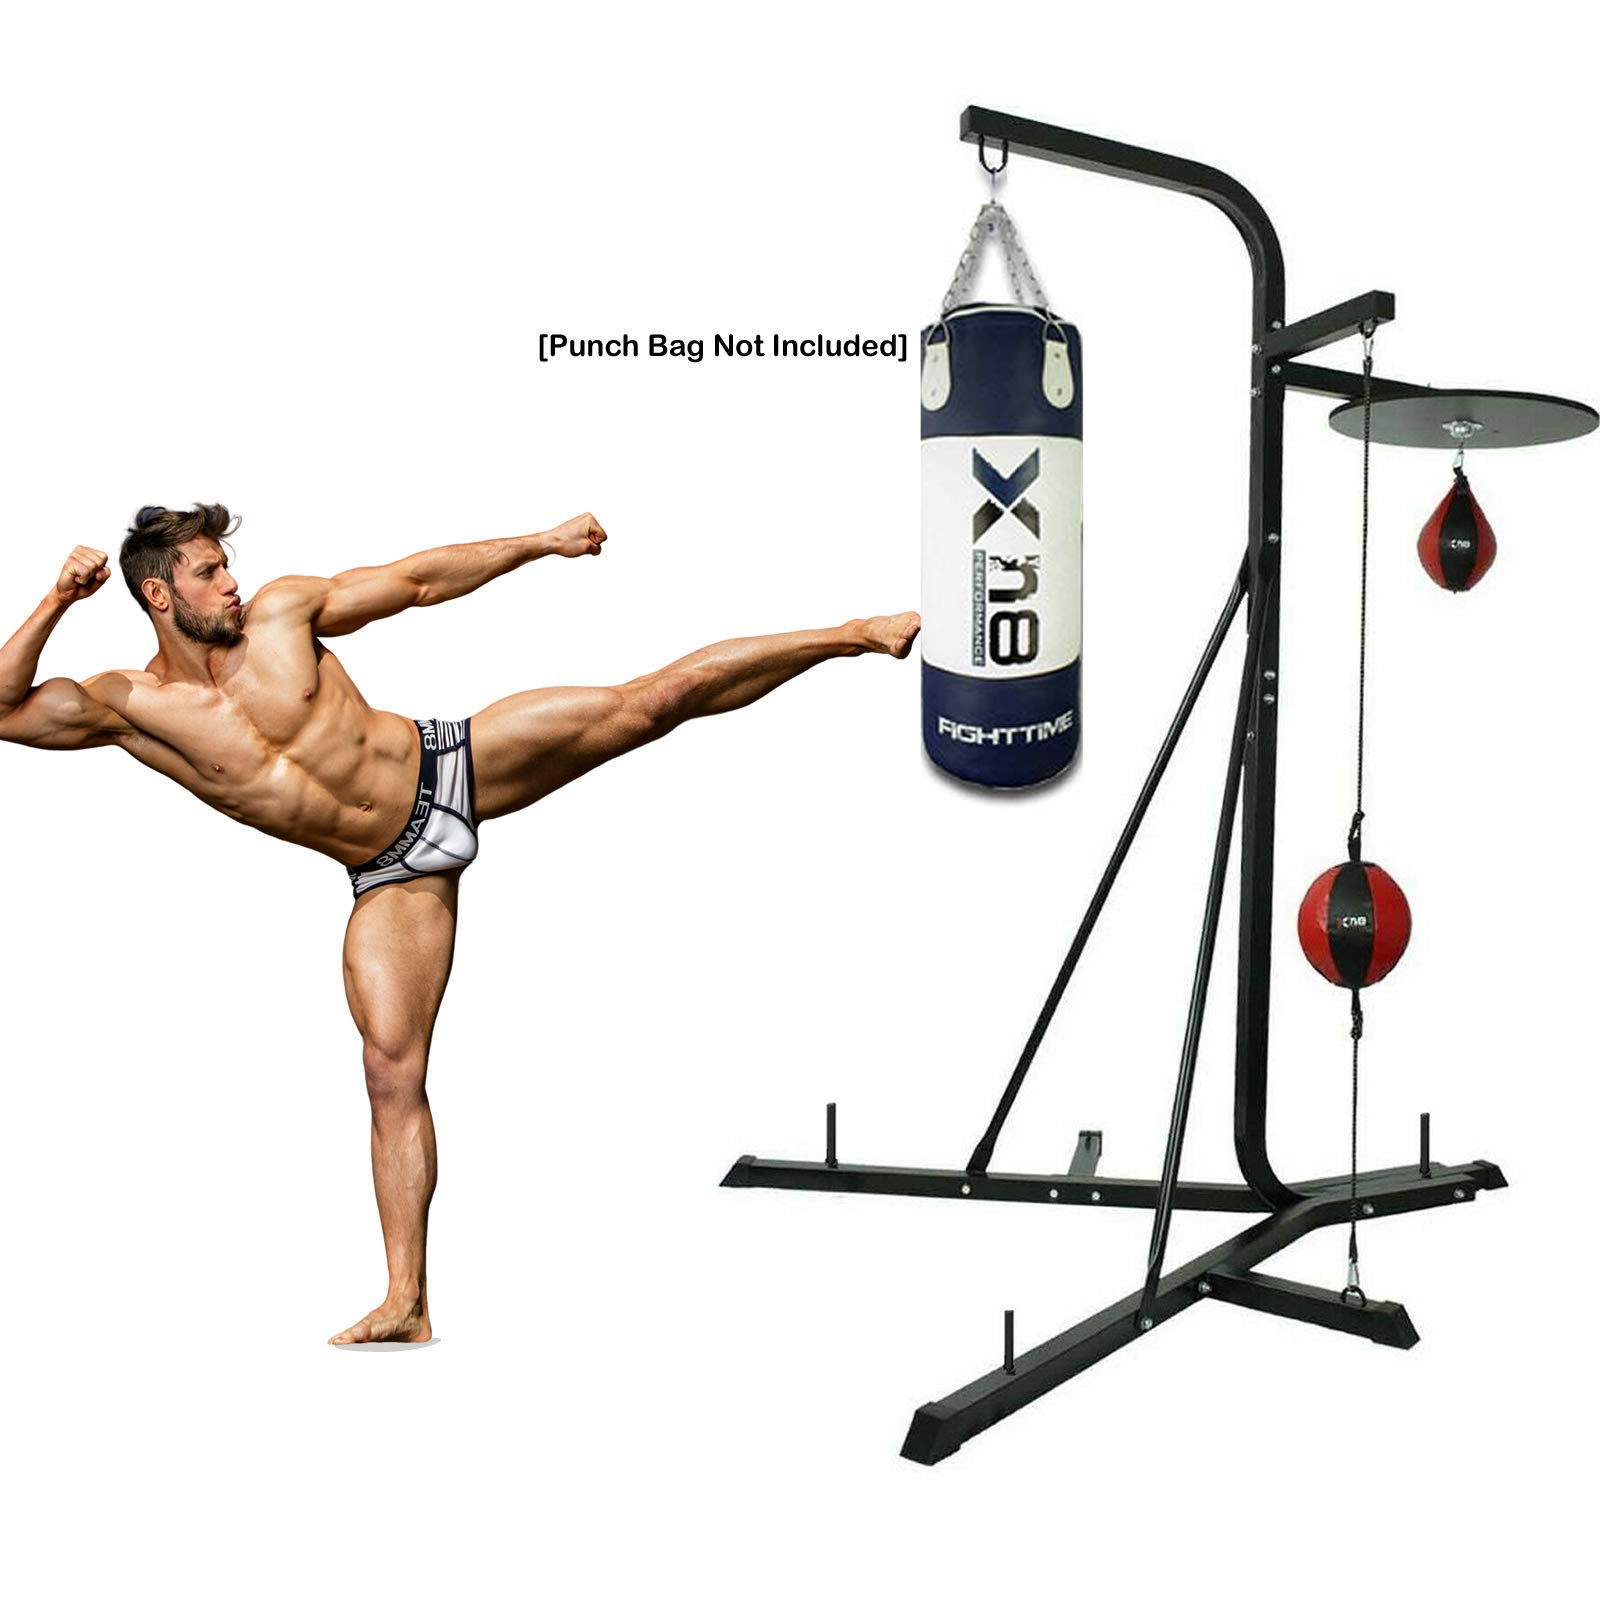 XN8 5.5ft Free Standing Punch Bag Stand MMA Training Martial Arts Heavy Duty Kick Boxing Dummy Target